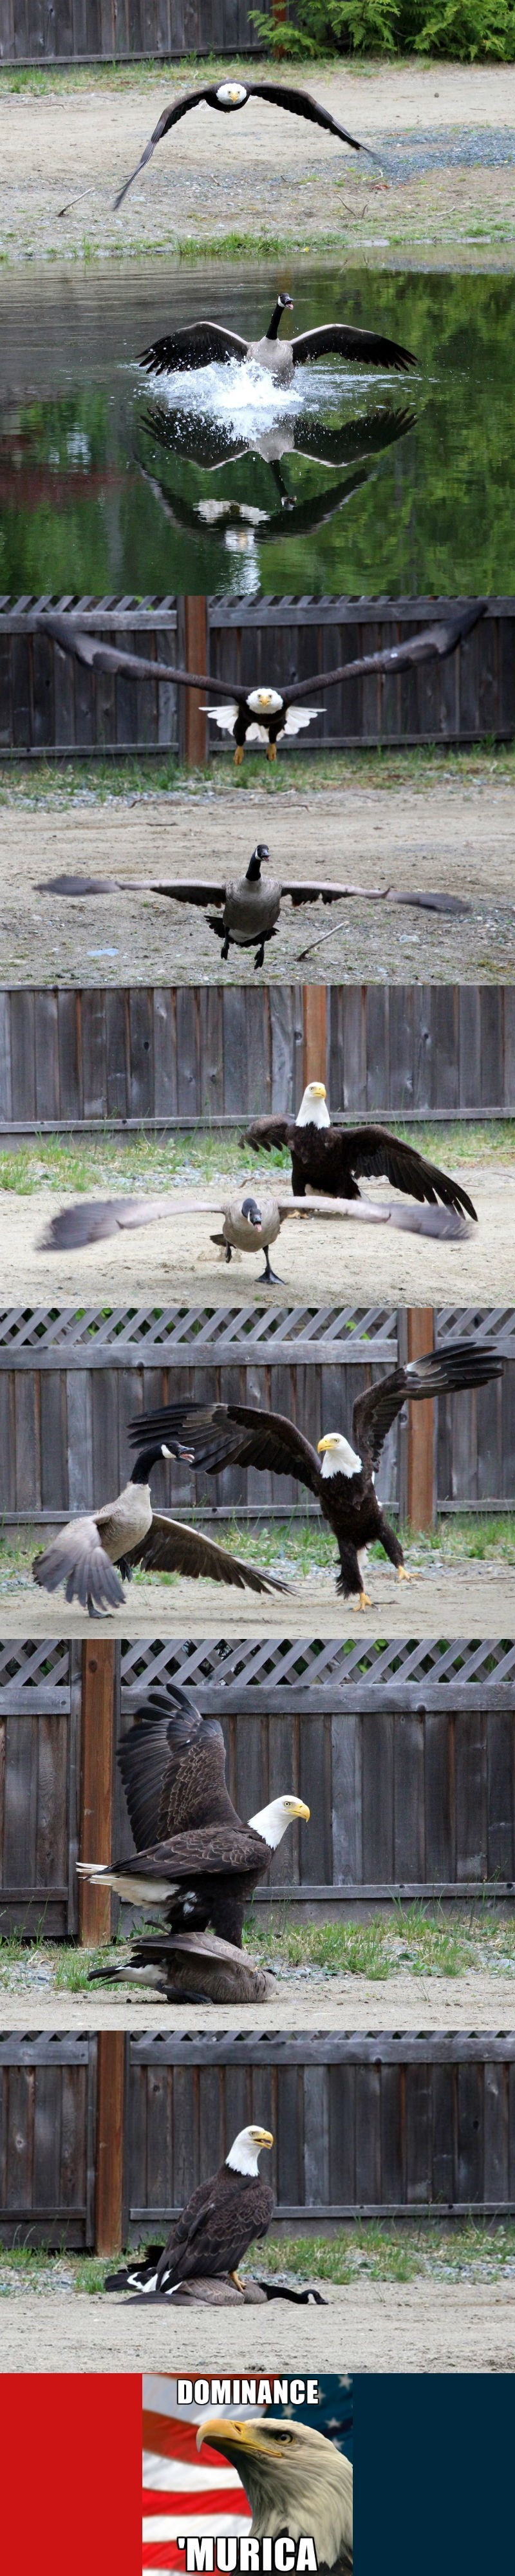 win bald eagle and canadian goose fight in real life